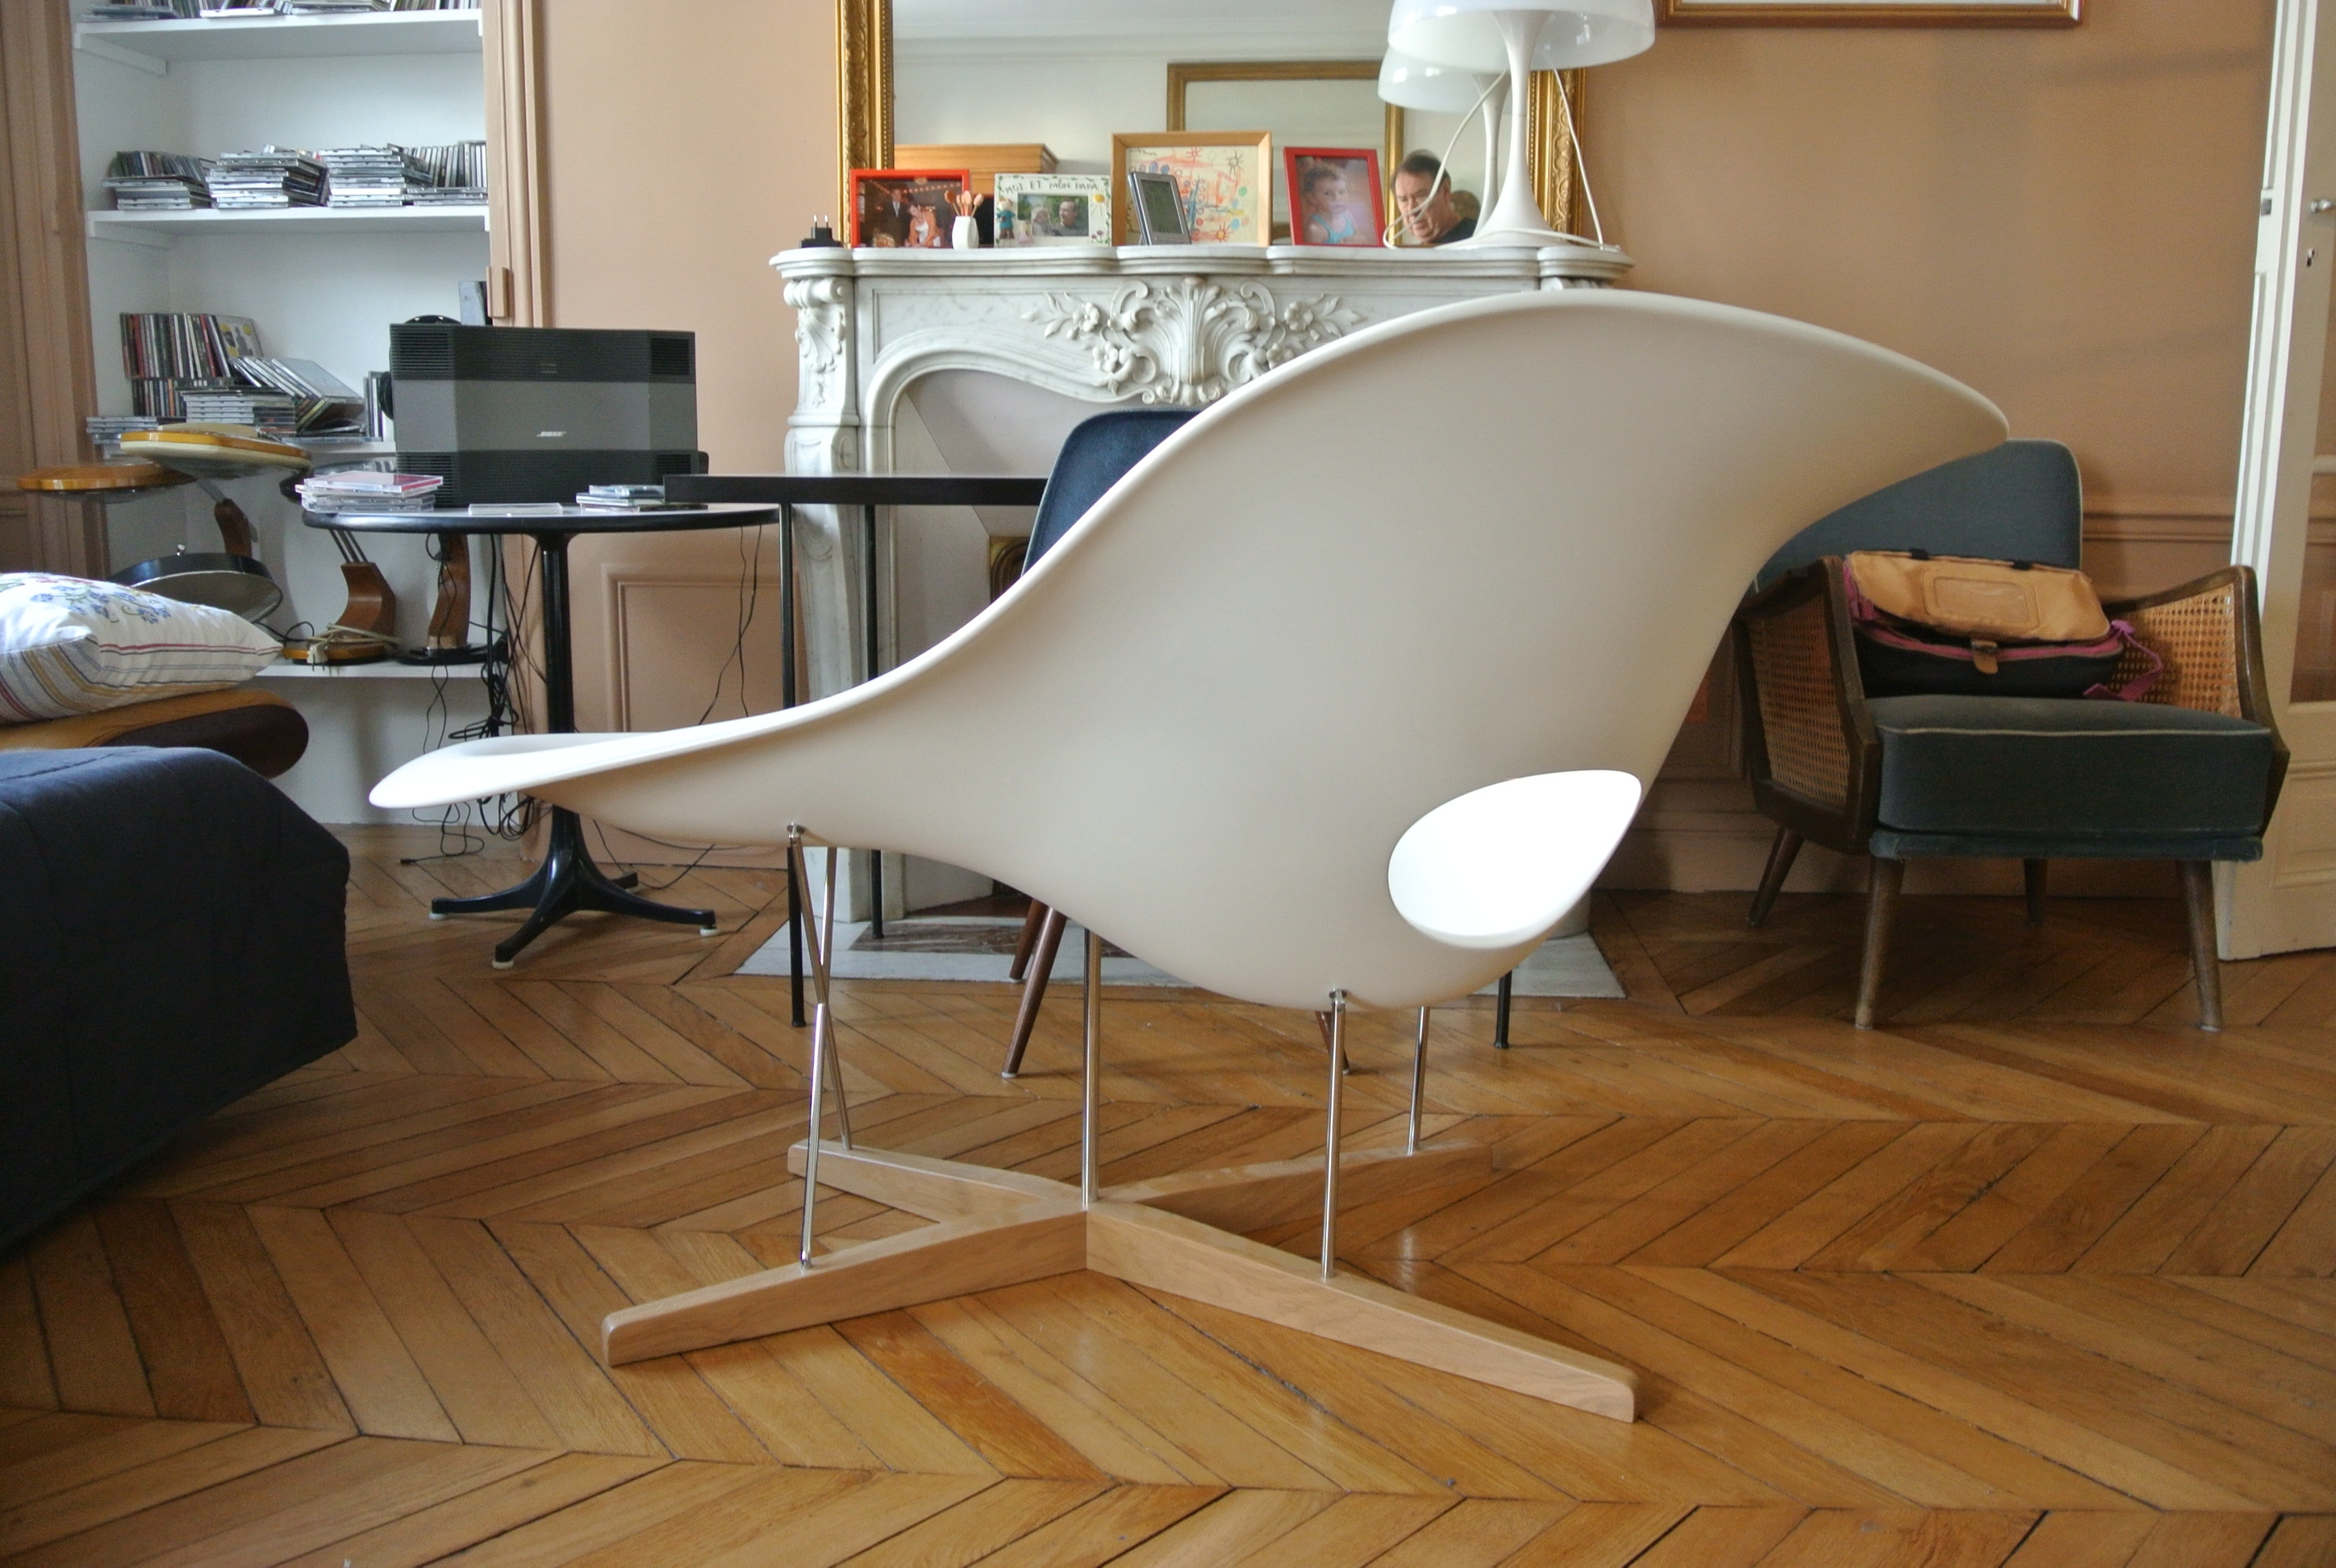 Chaise imitation charles eames excellent eames wire chair for Chaise bascule eames vitra